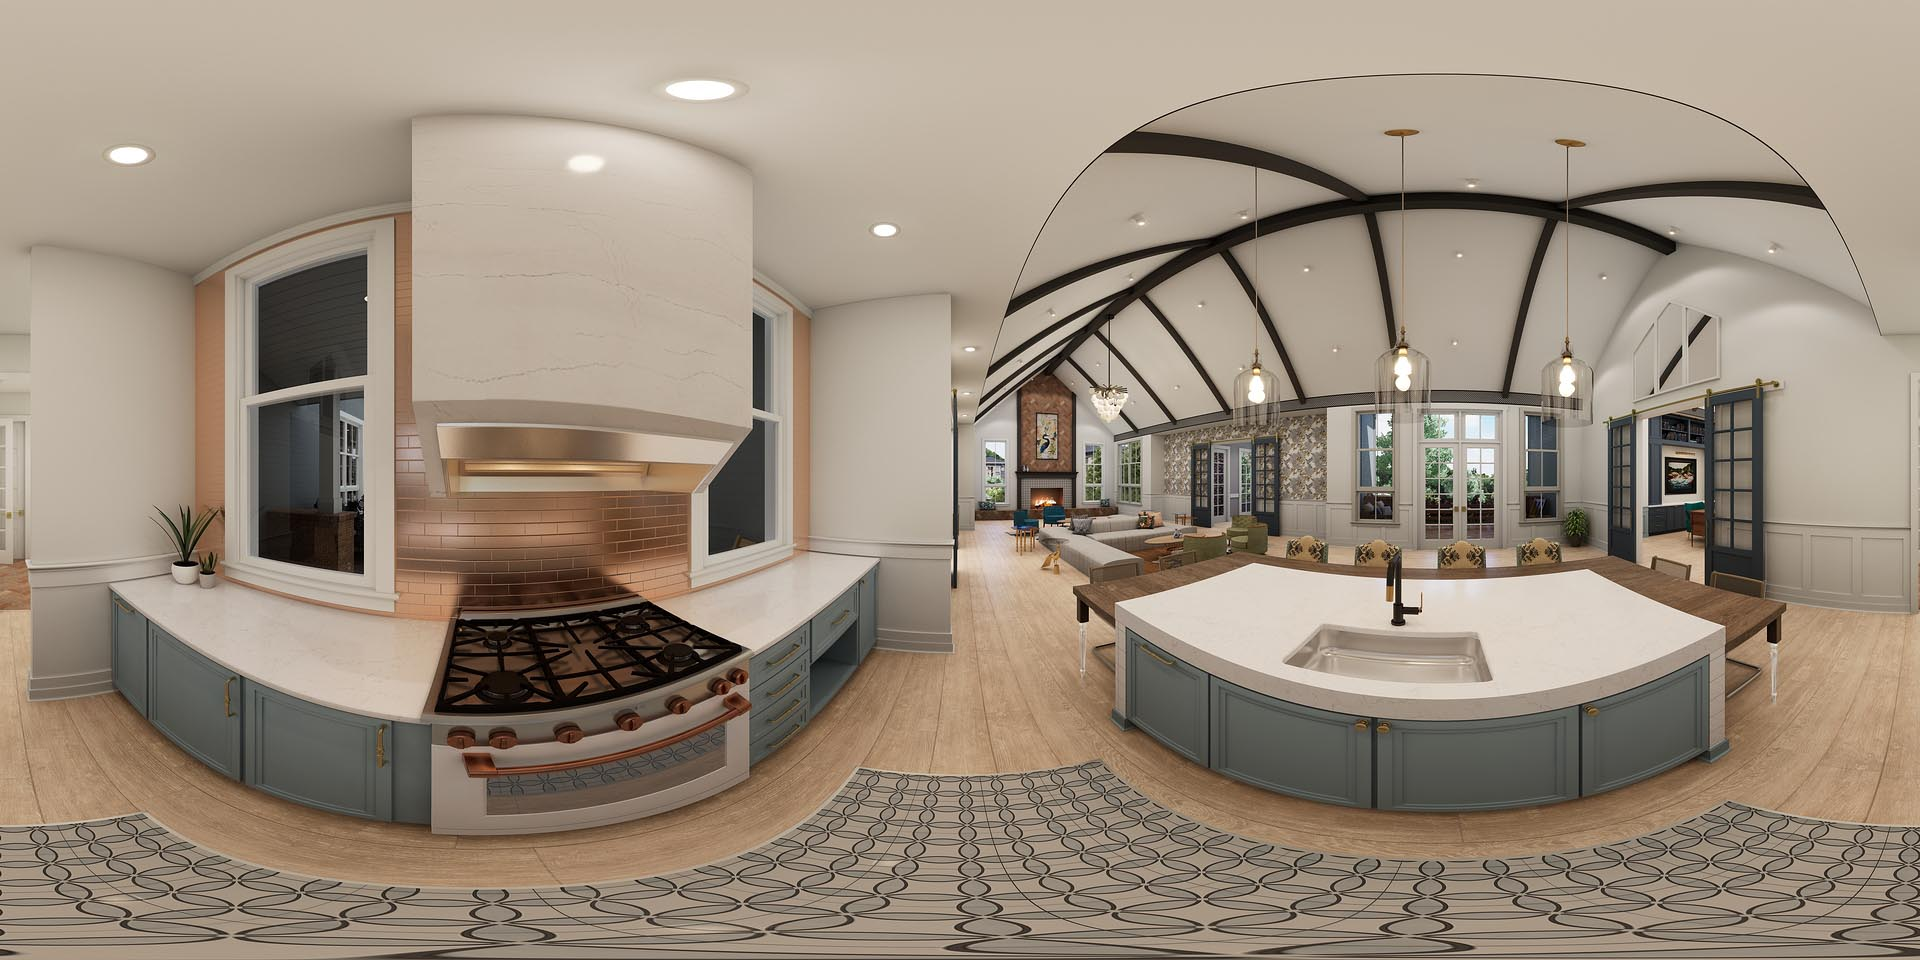 A 360 rendering of a chef's kitchen area in an amenity space